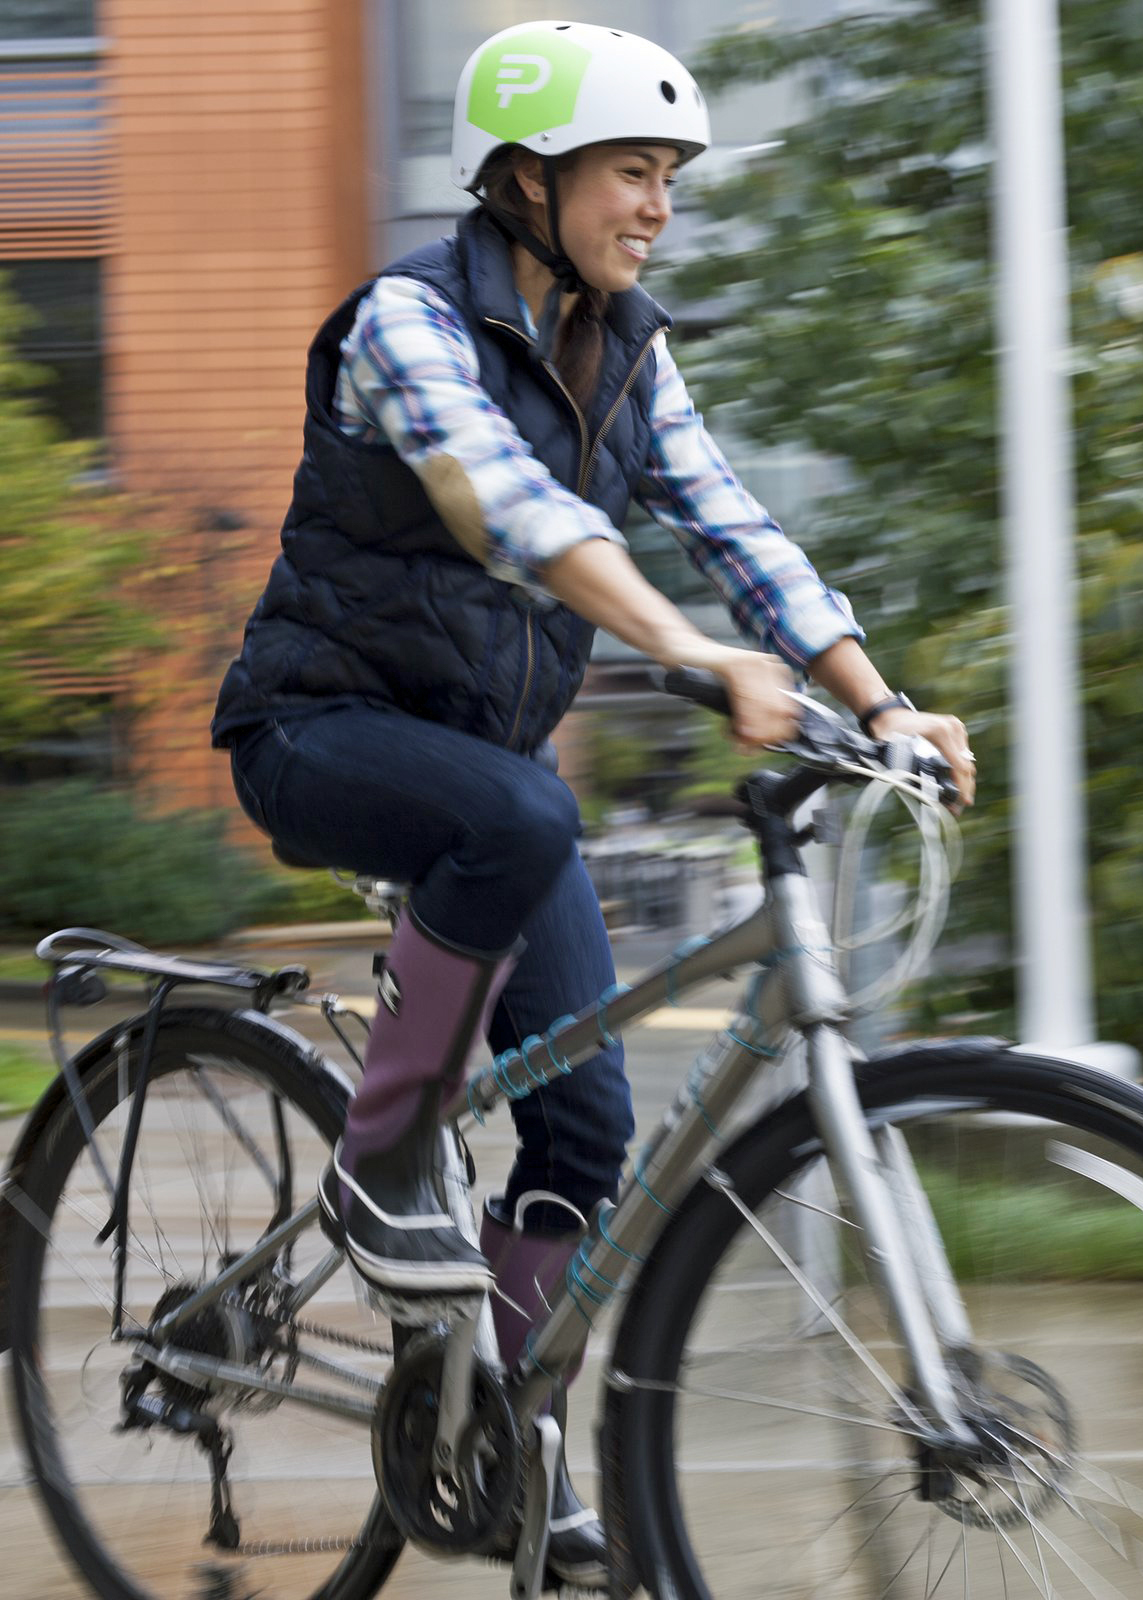 Woman rides bicycle across campus